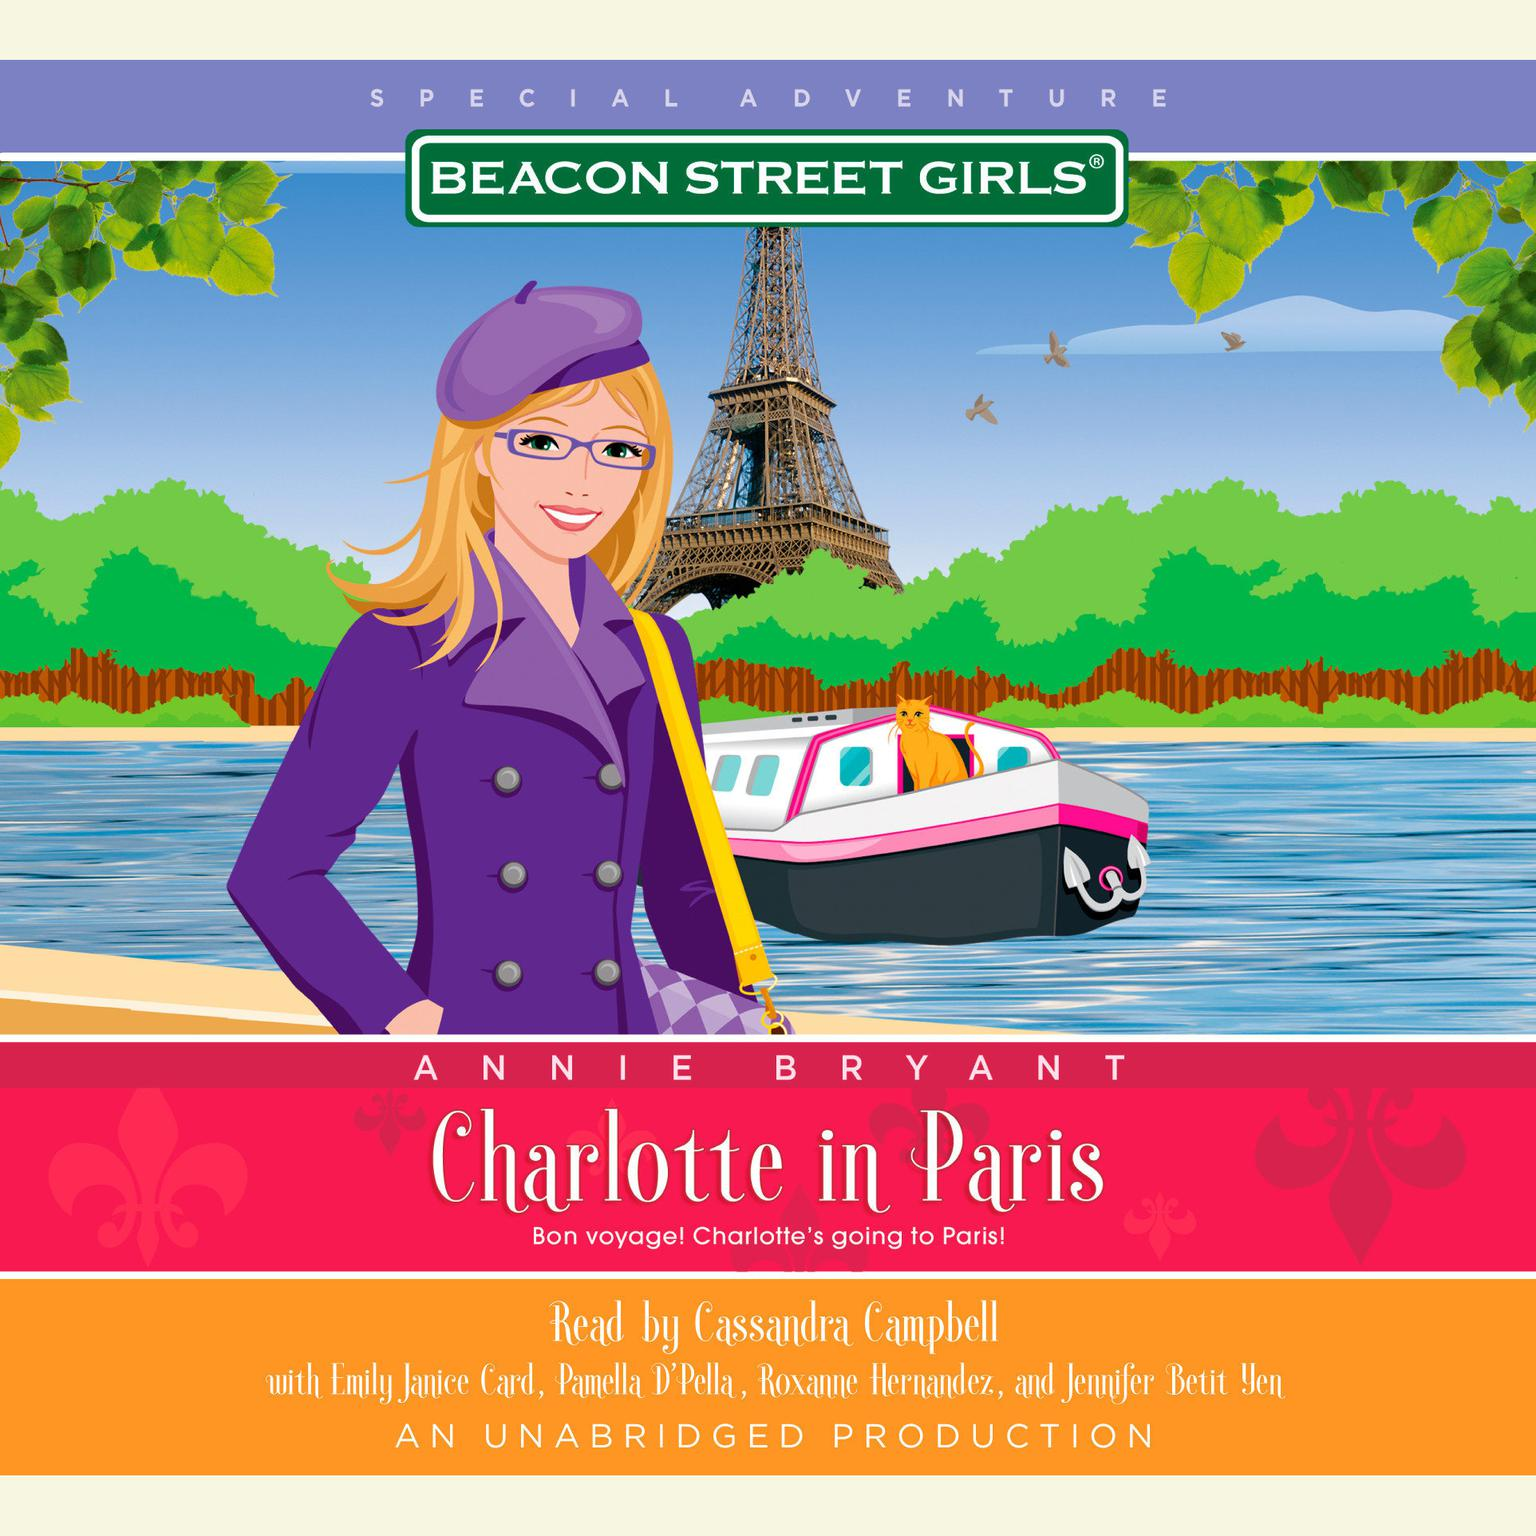 Printable Beacon Street Girls Special Adventure: Charlotte in Paris Audiobook Cover Art